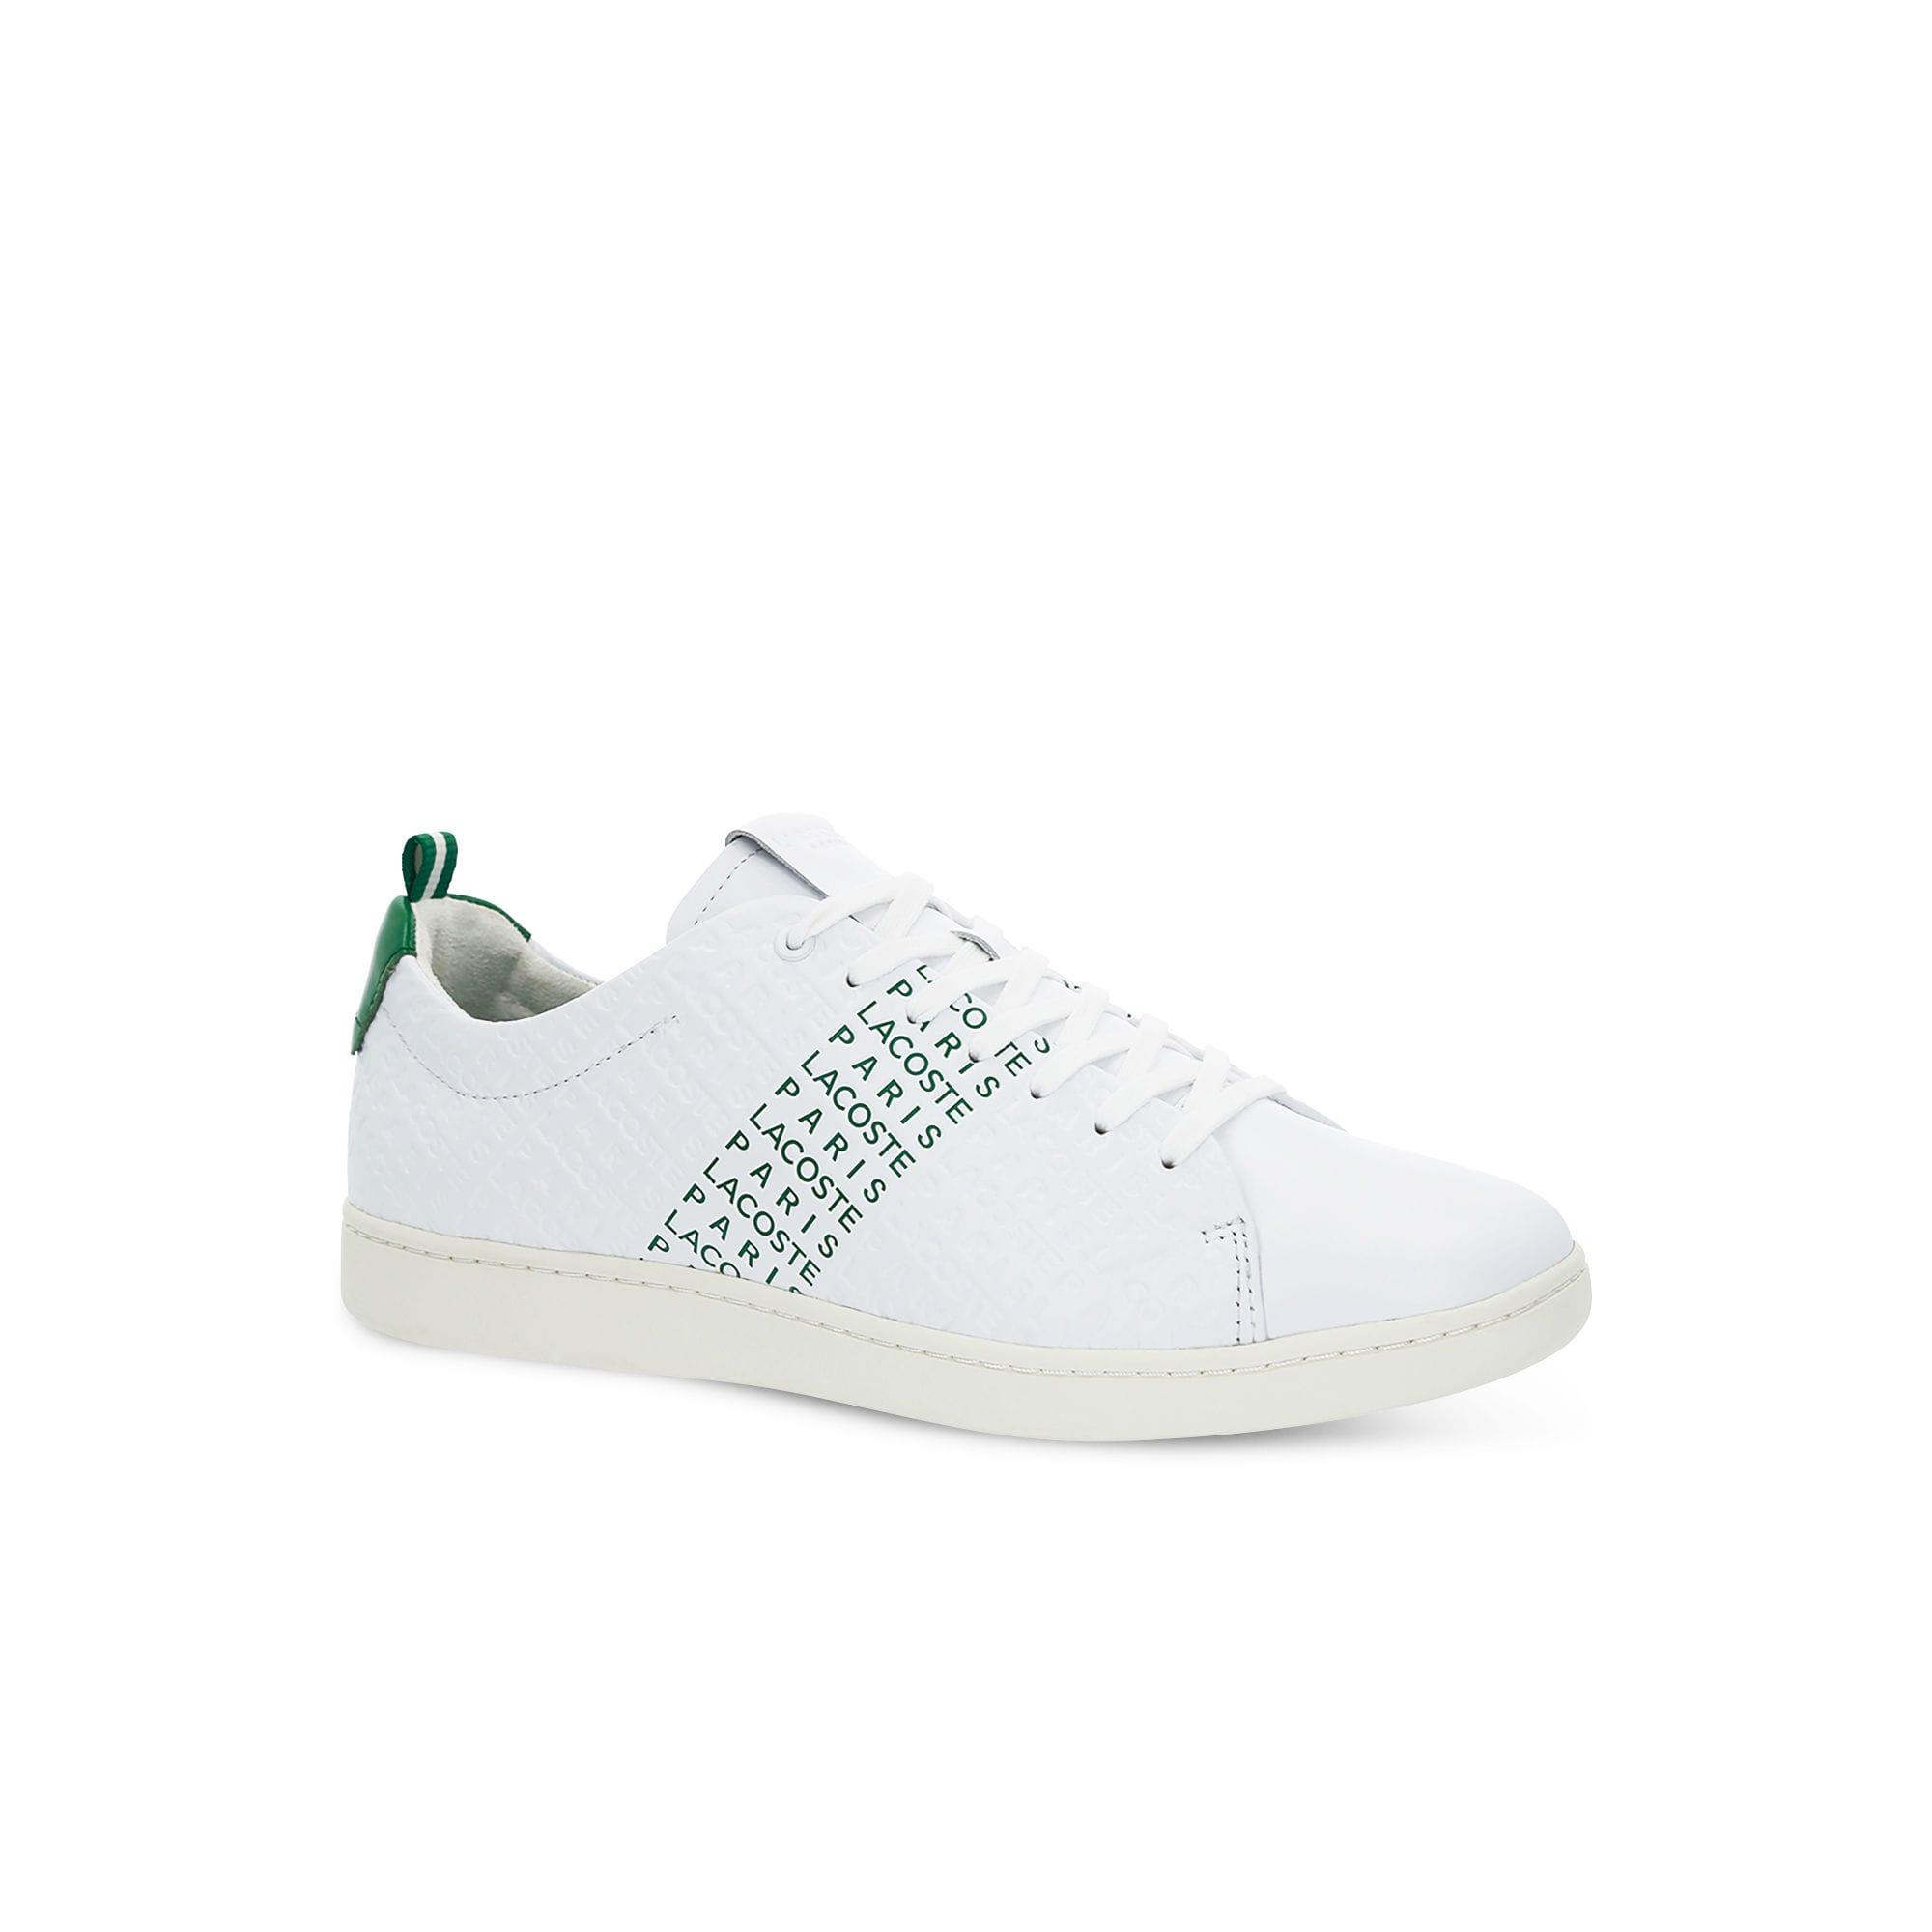 caffe354ab Lacoste Carnaby Evo Embossed Leather Trainers | Chicago City Sports